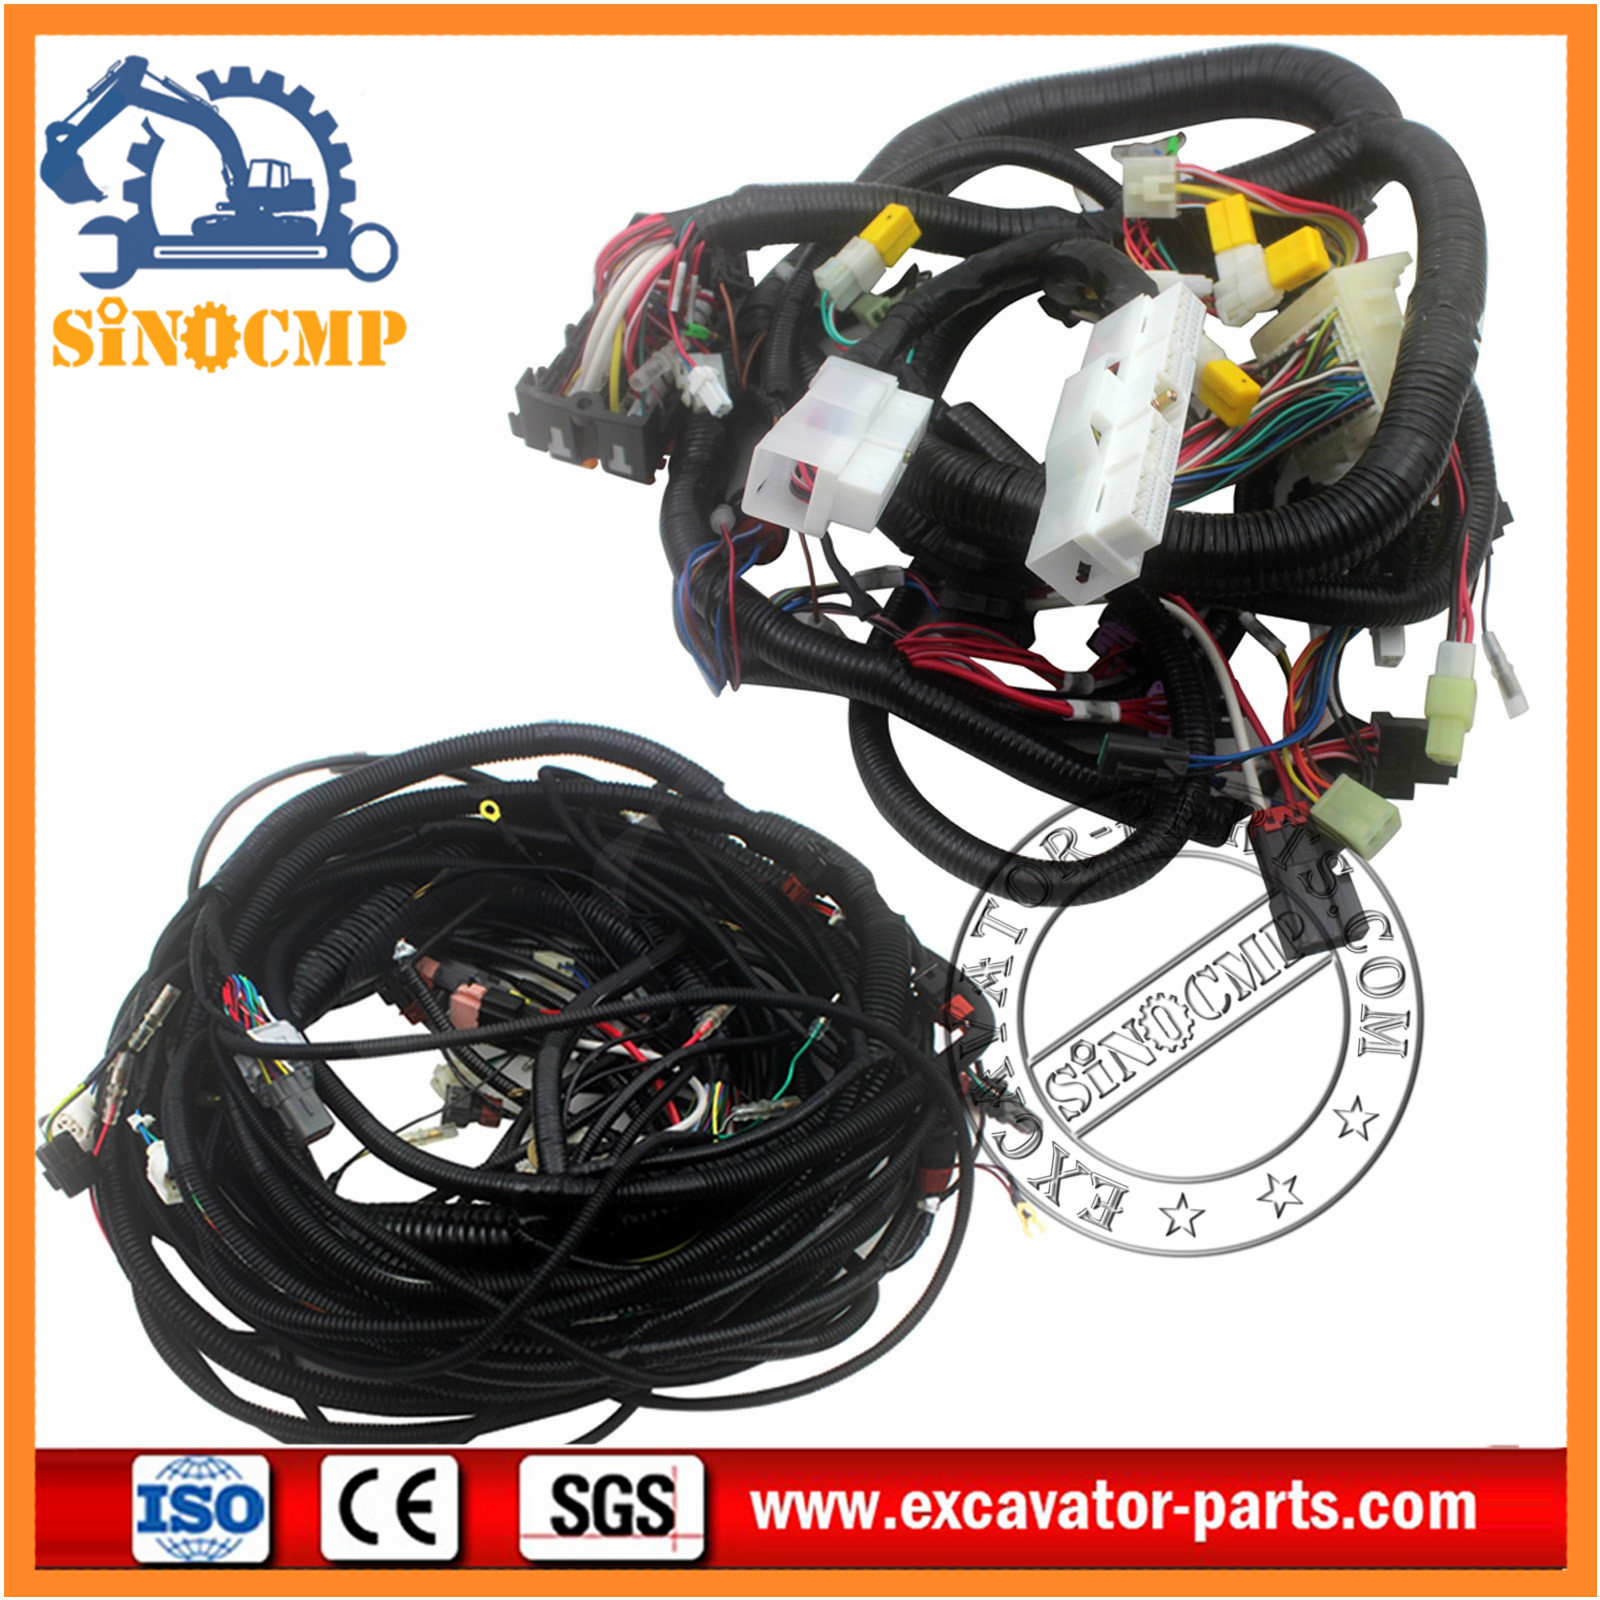 hitachi ex100-3 wiring harness